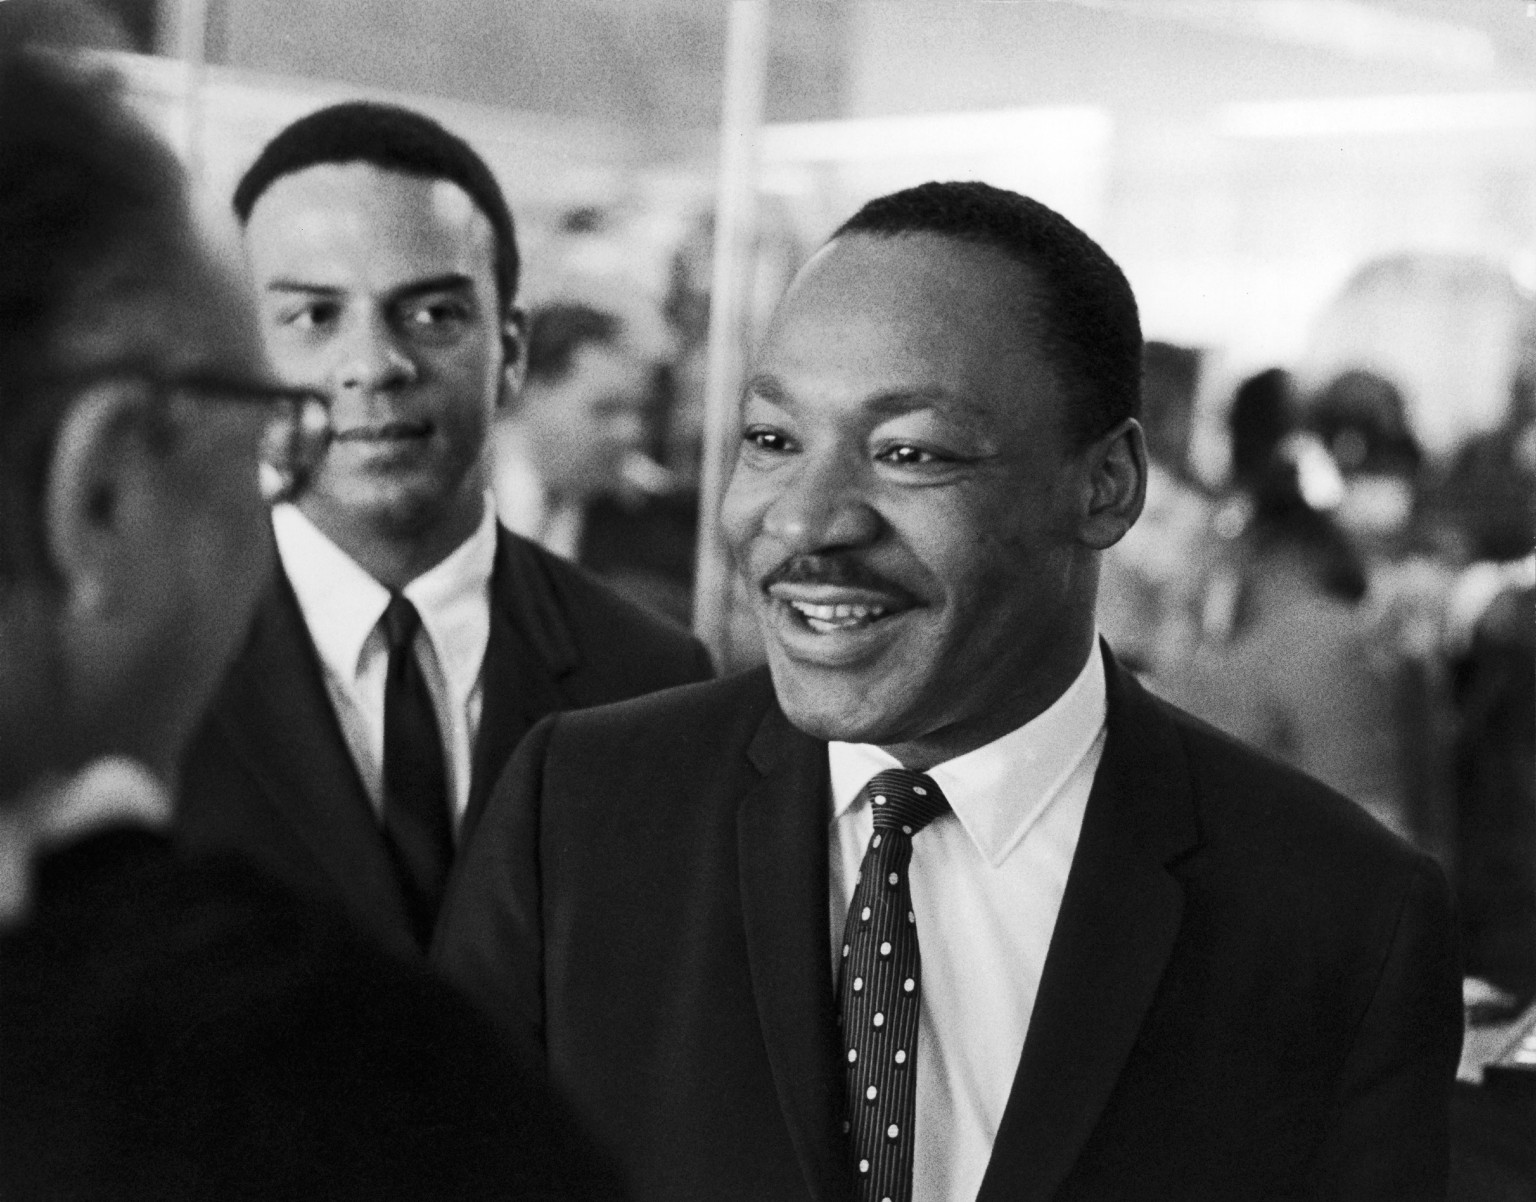 3 essay jrs king life luther martin paragraph Need essay sample on benjamin franklin and martin luther king life, born on january 17 related essays: martin luther king jr.